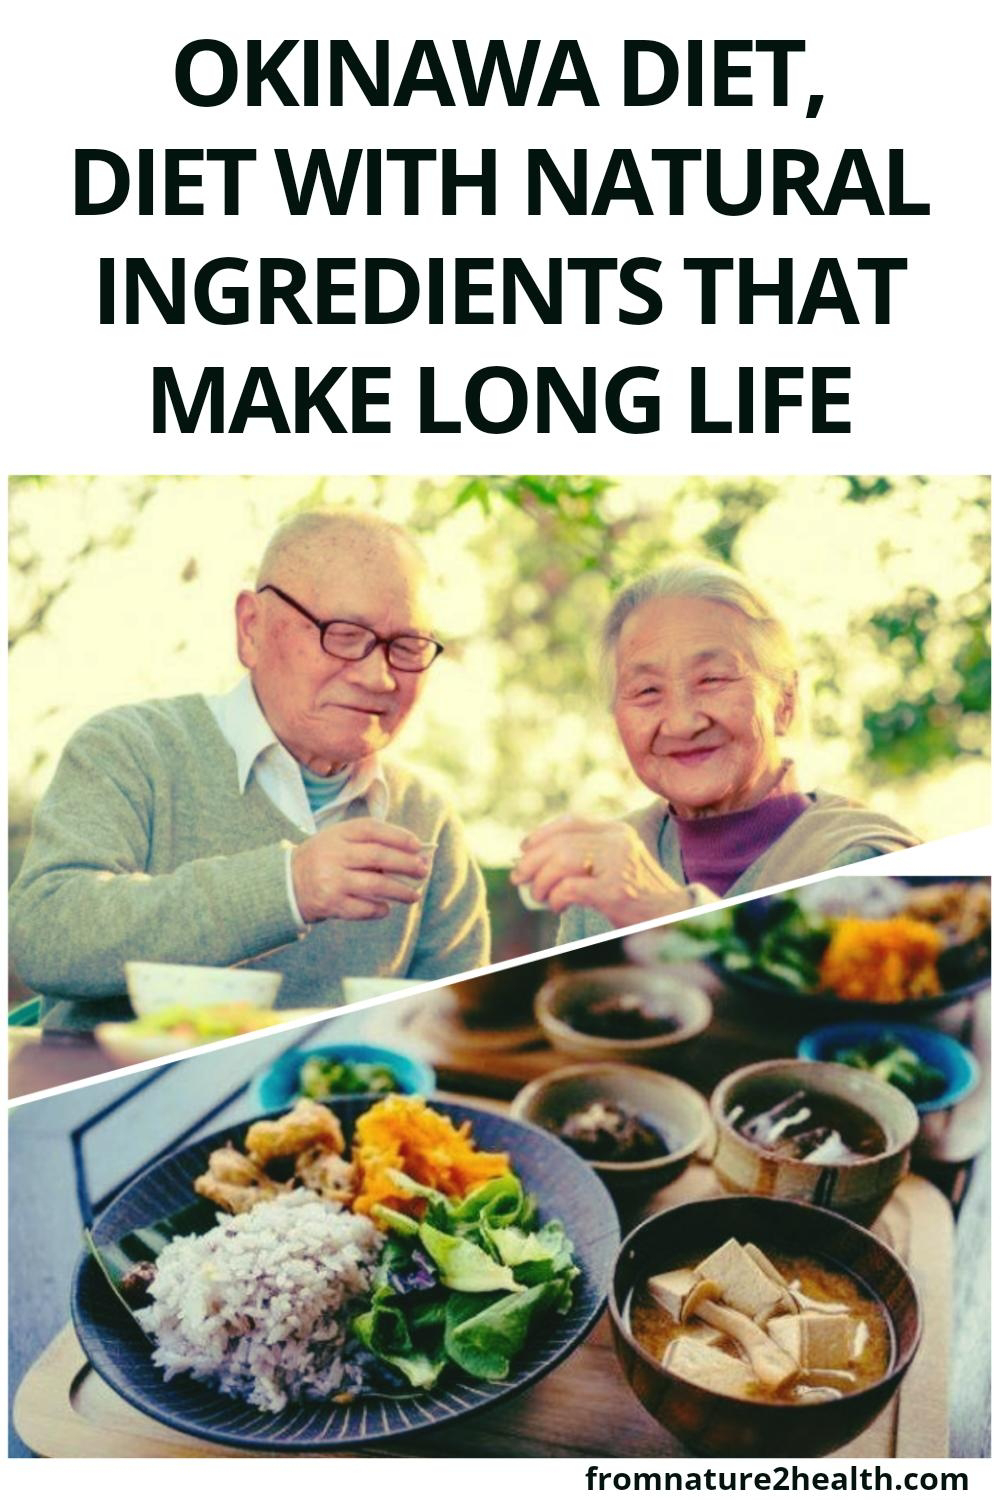 Okinawa Diet: Diet With Natural Ingredients That Make Long Life